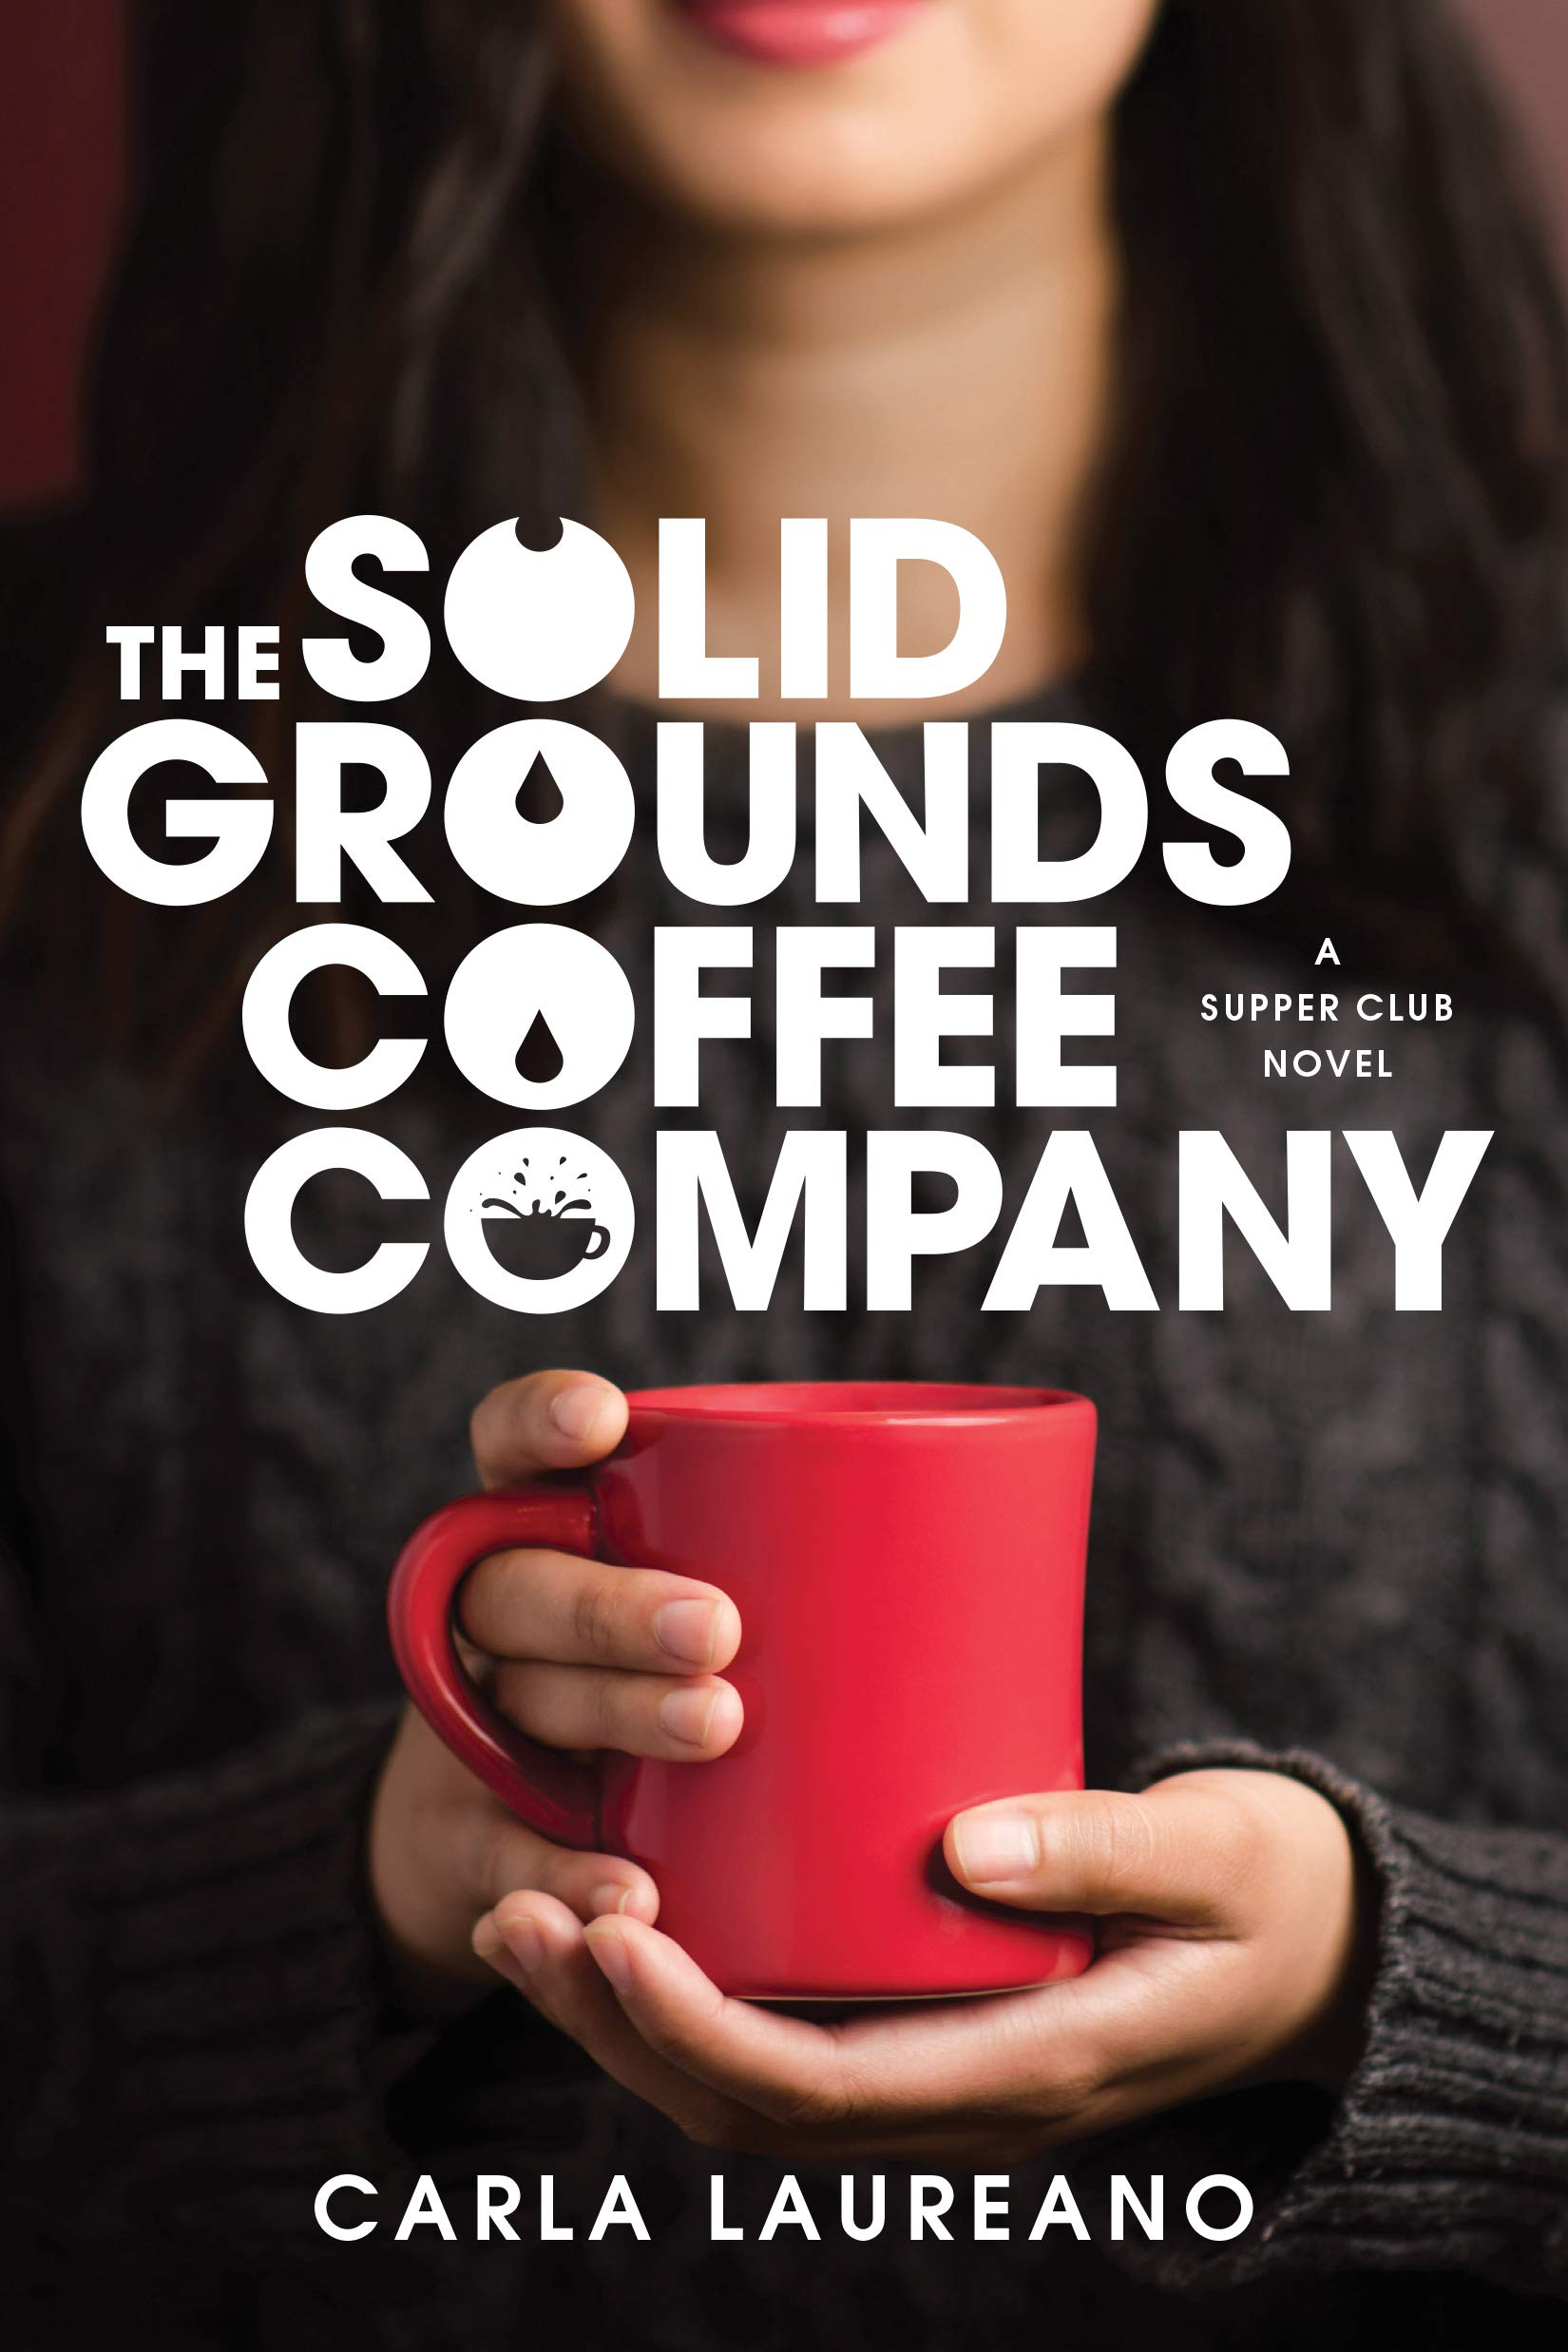 The Solid Grounds Coffee Company by Carla Laureano {A Book Review}